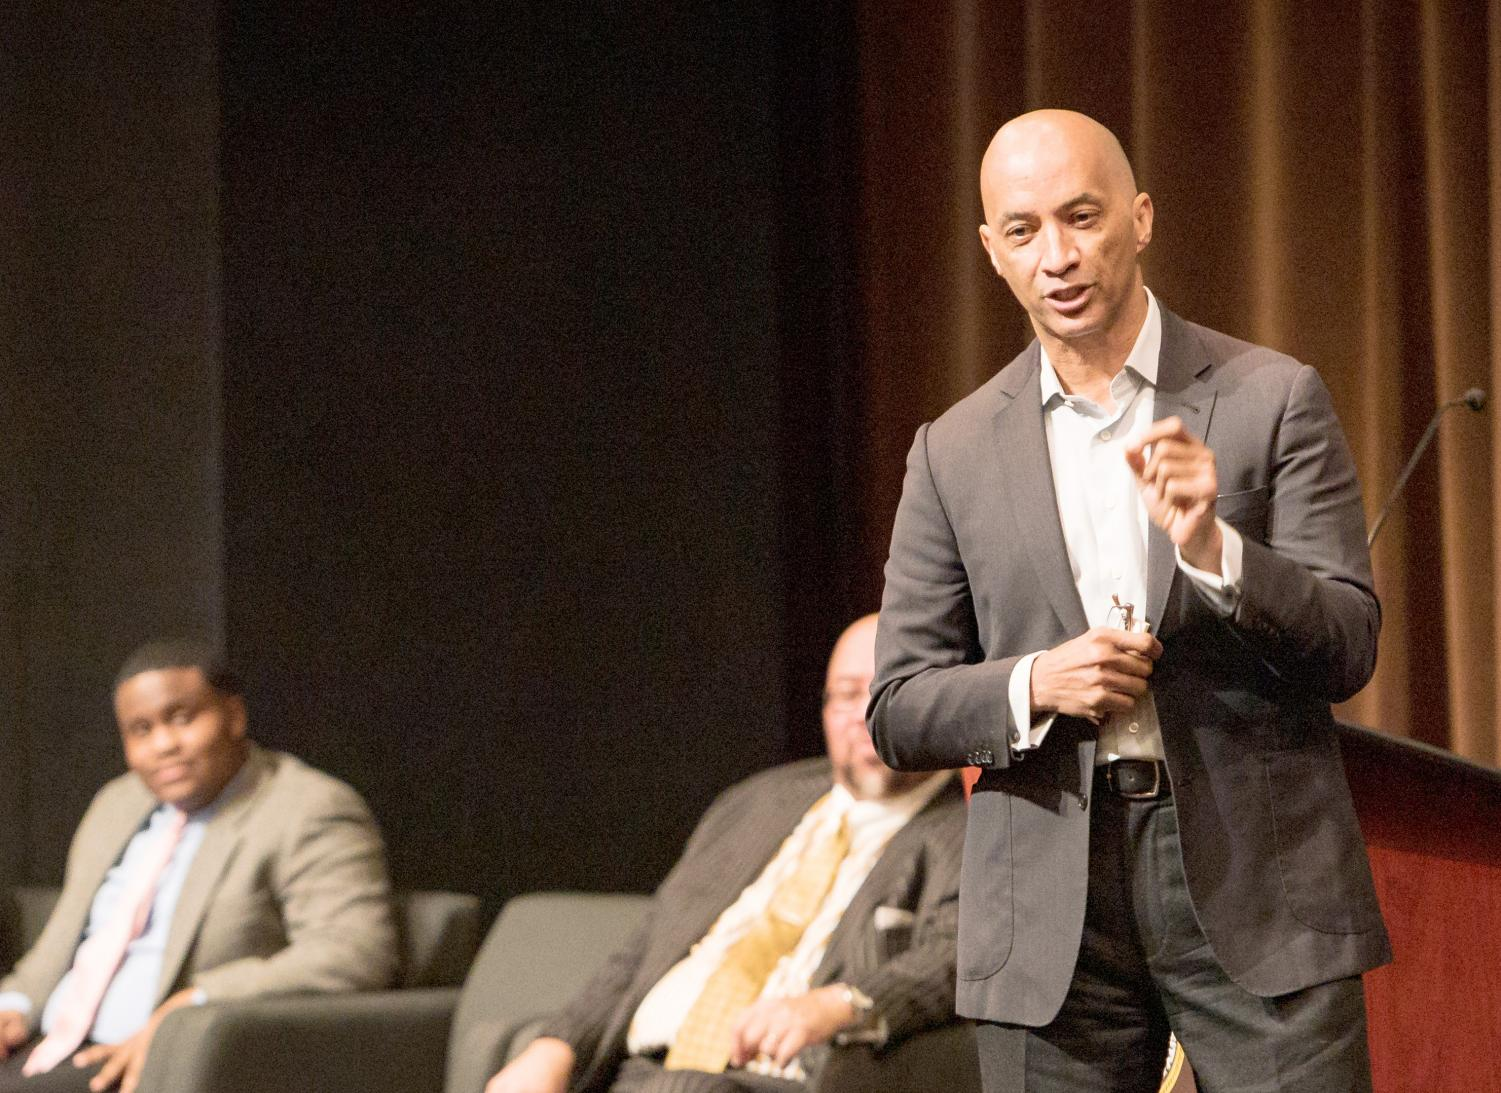 Byron Pitts spoke with students about privilege and higher education in the world during MLK Week.